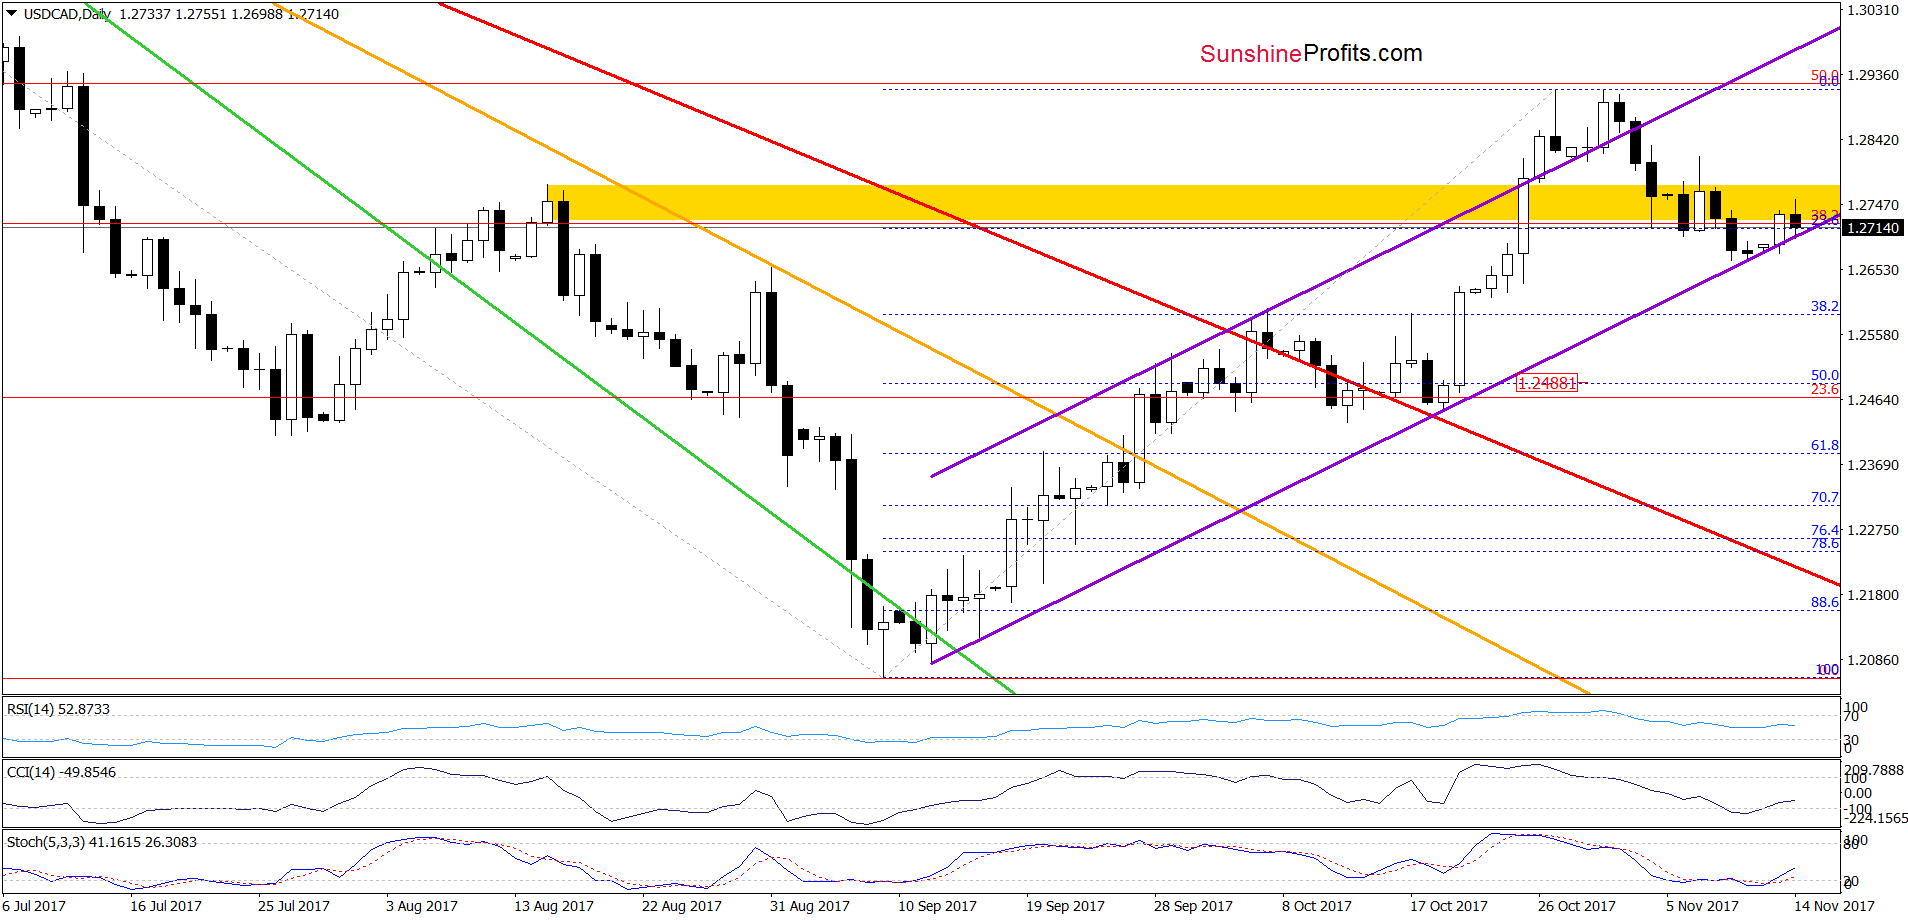 USD/CAD - the daily chart